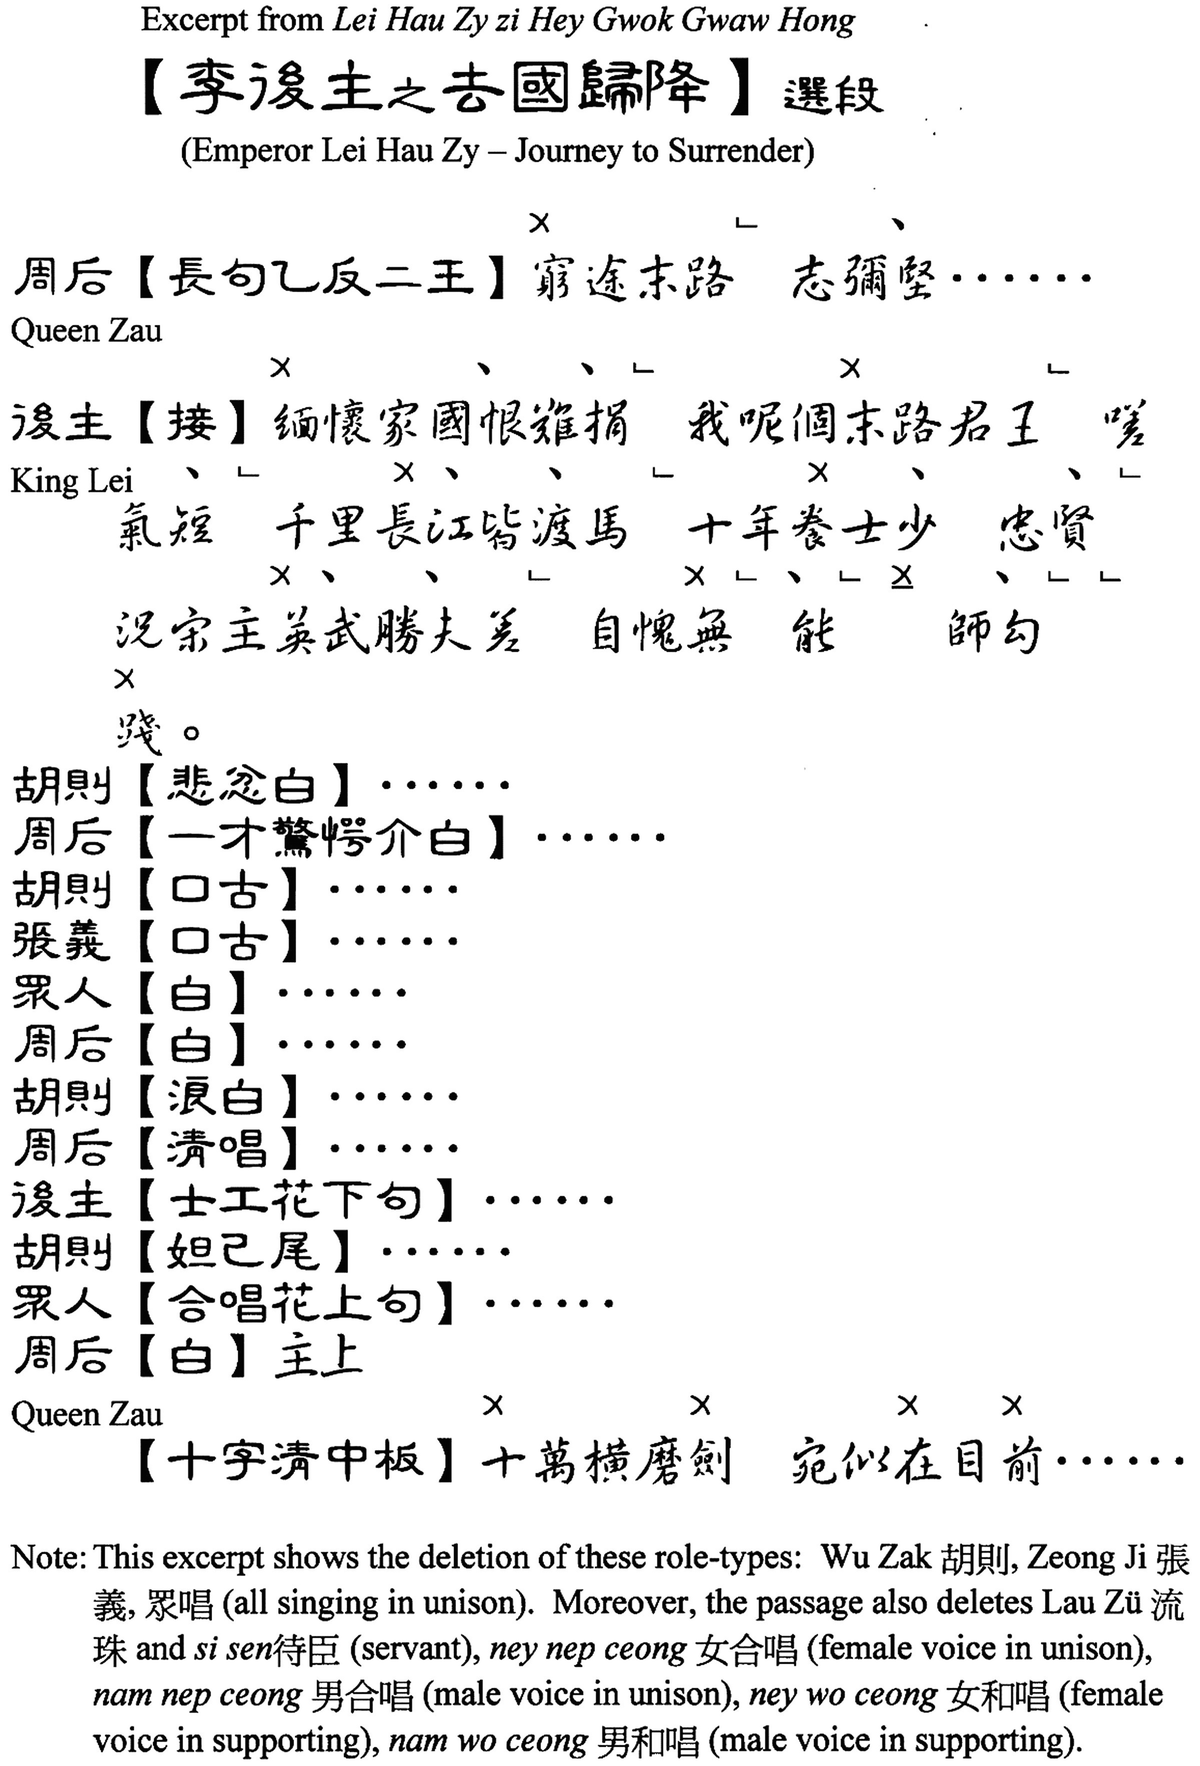 Customization of Performance: Cantonese Operatic Song Groups at